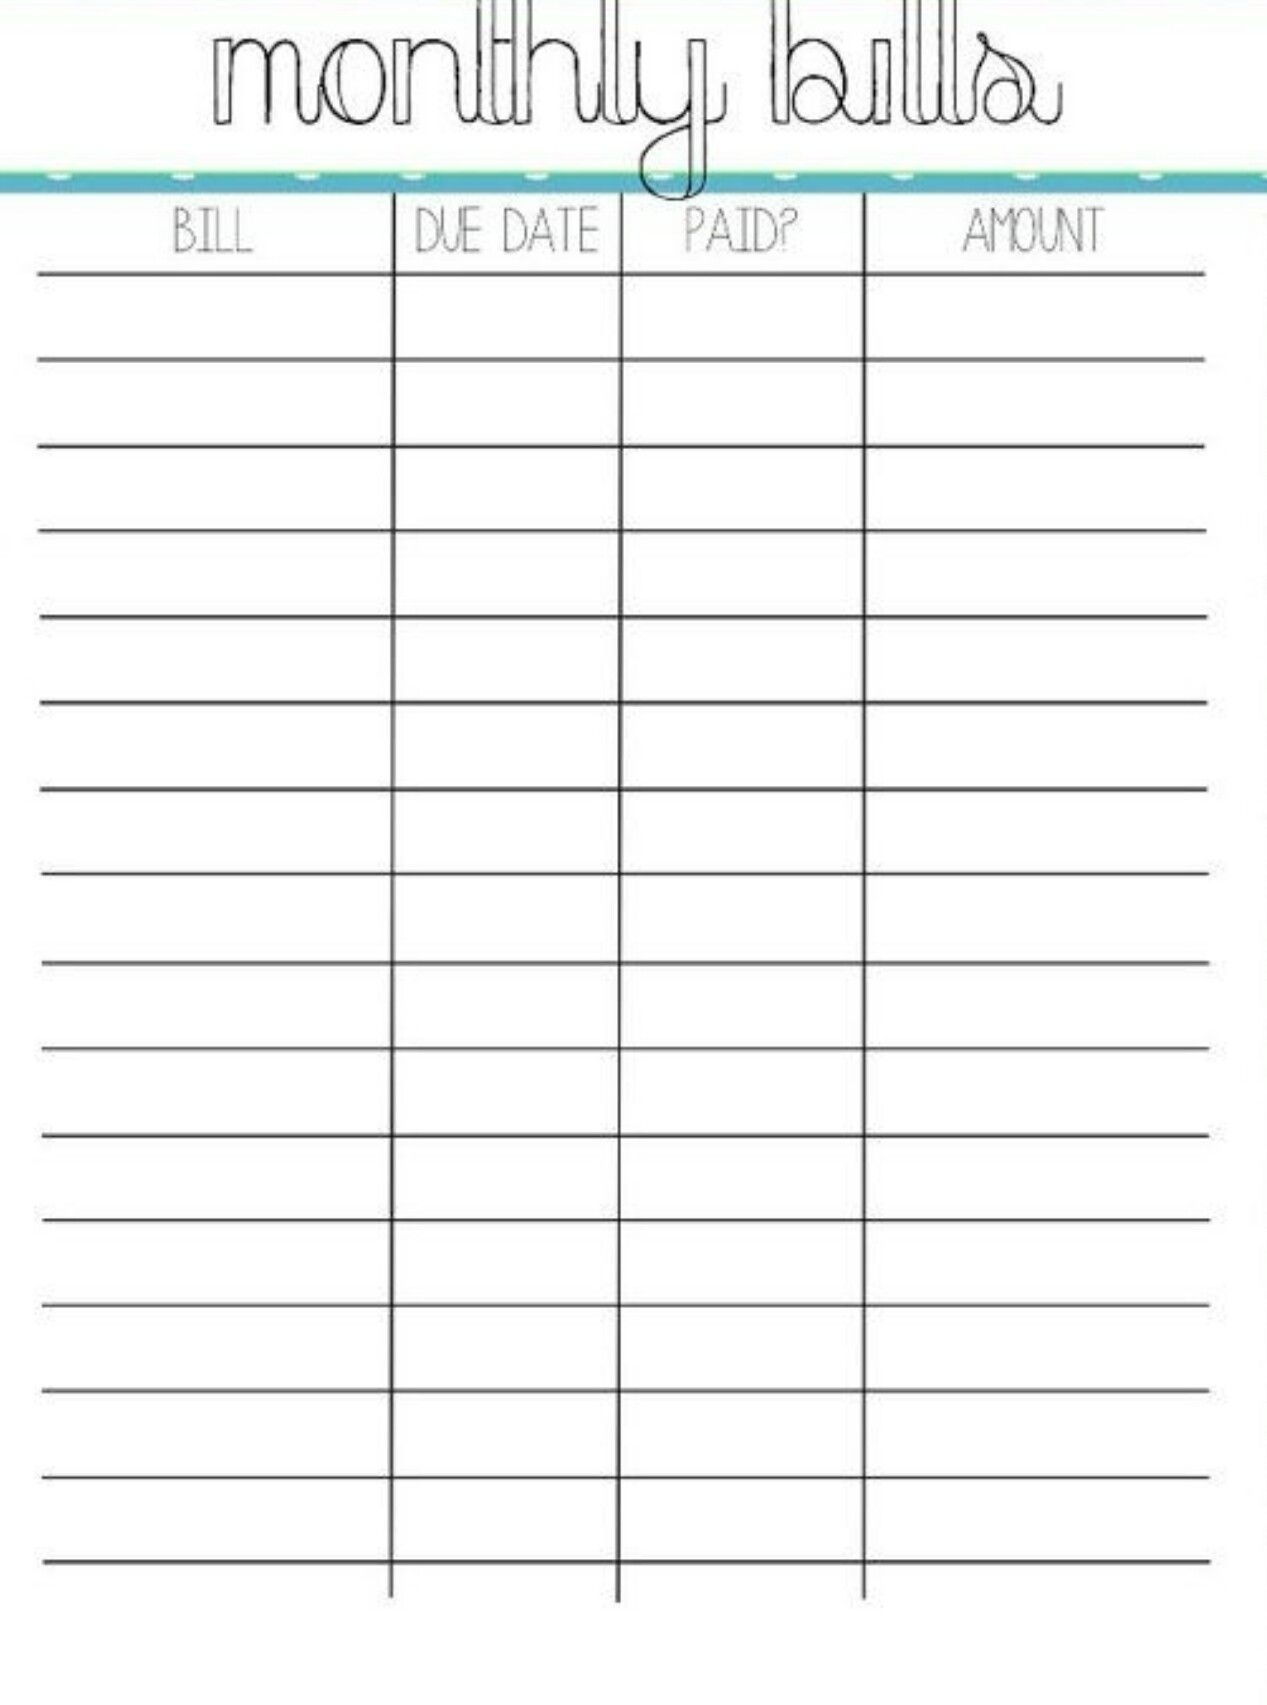 Printable Monthly Bill Paying Worksheet